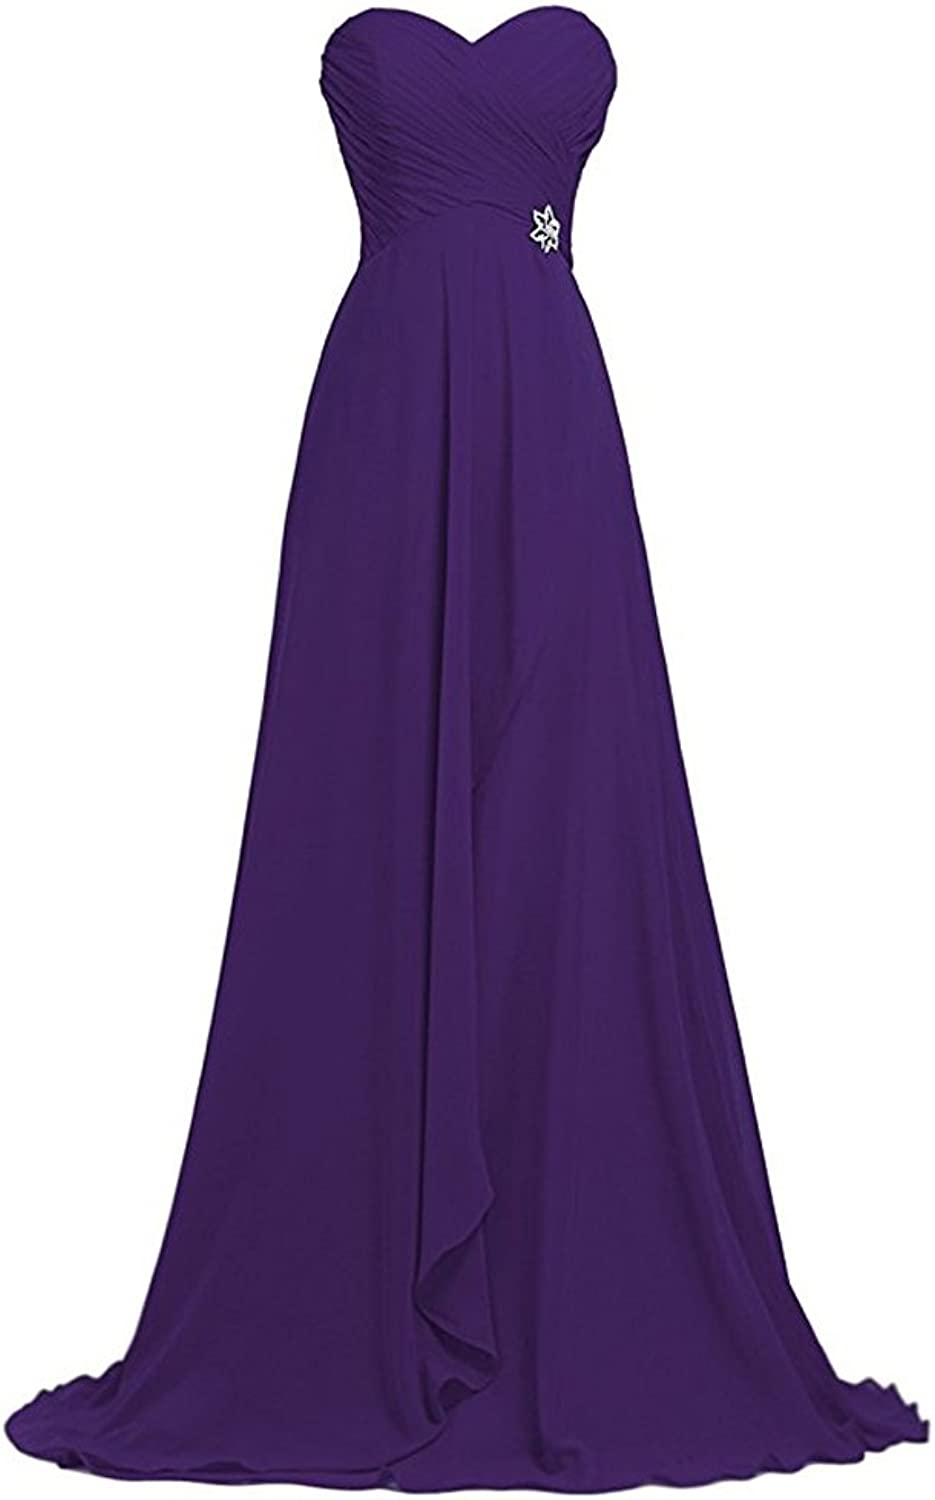 Sxfashbrd Women's Sweetheart A Line Long Formal Evening Prom Cocktail Homecoming Party Dresses Gowns